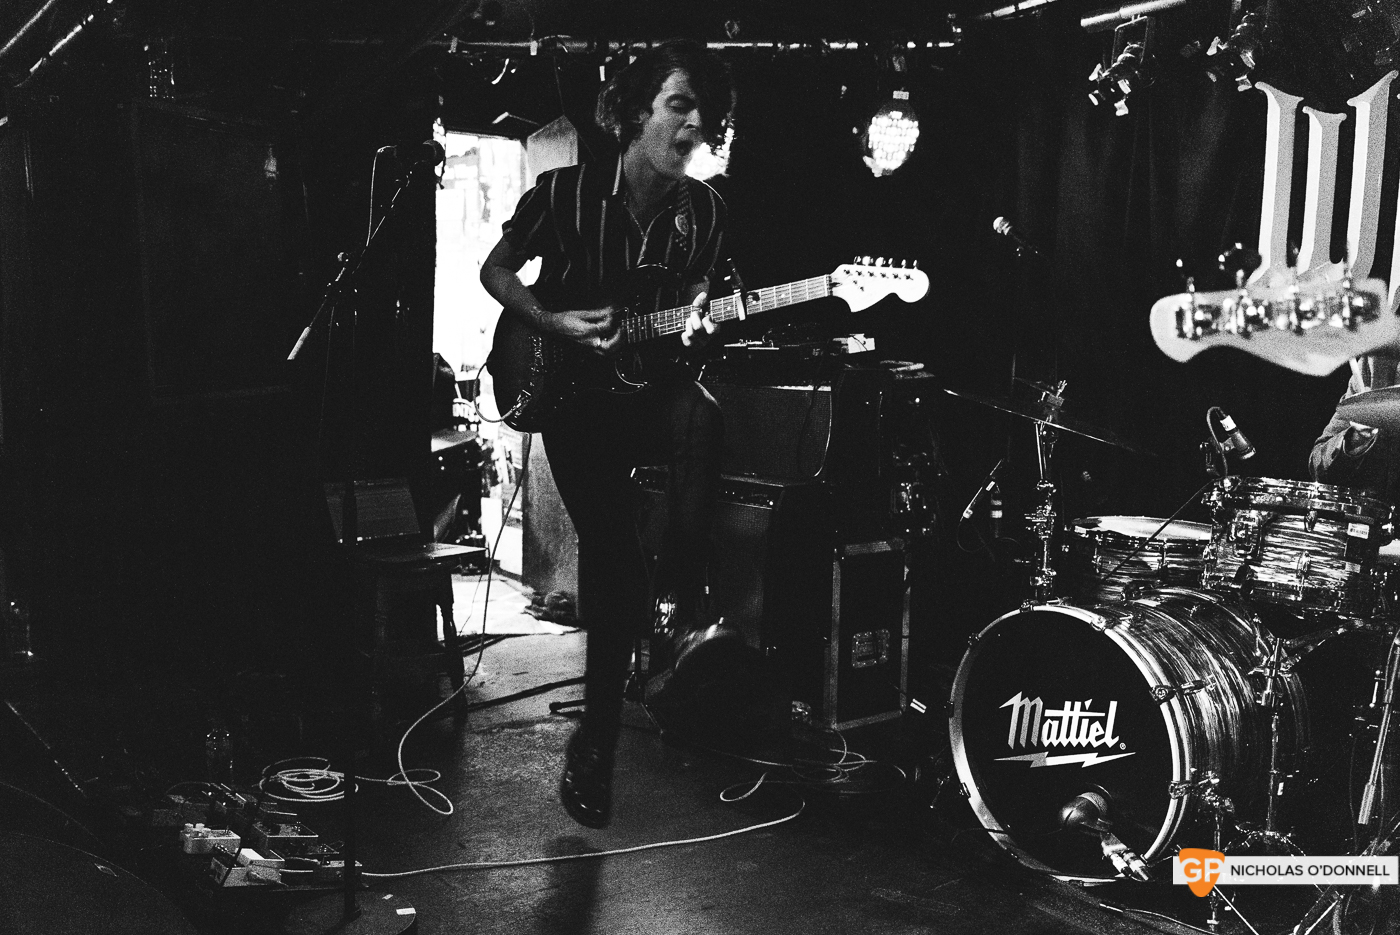 Support 1- Nerves opening for Mattiel in Whelan's. Photos by Nicholas O'Donnell. (2 of 6)